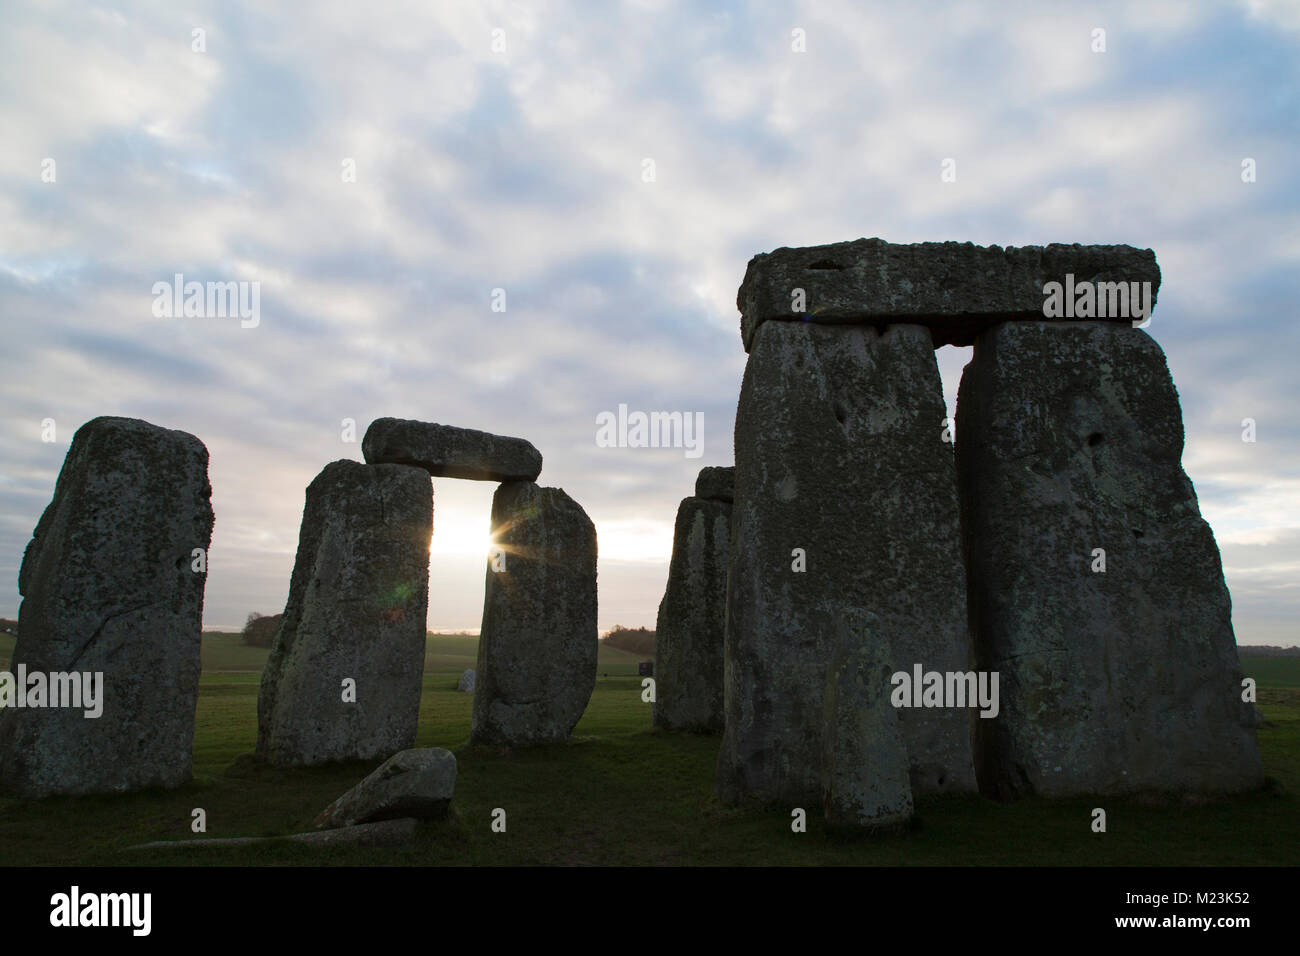 The Stonehenge stone circle in Wiltshire, England. The ancient monument dates from the Neolithic era, around 5,000 - Stock Image